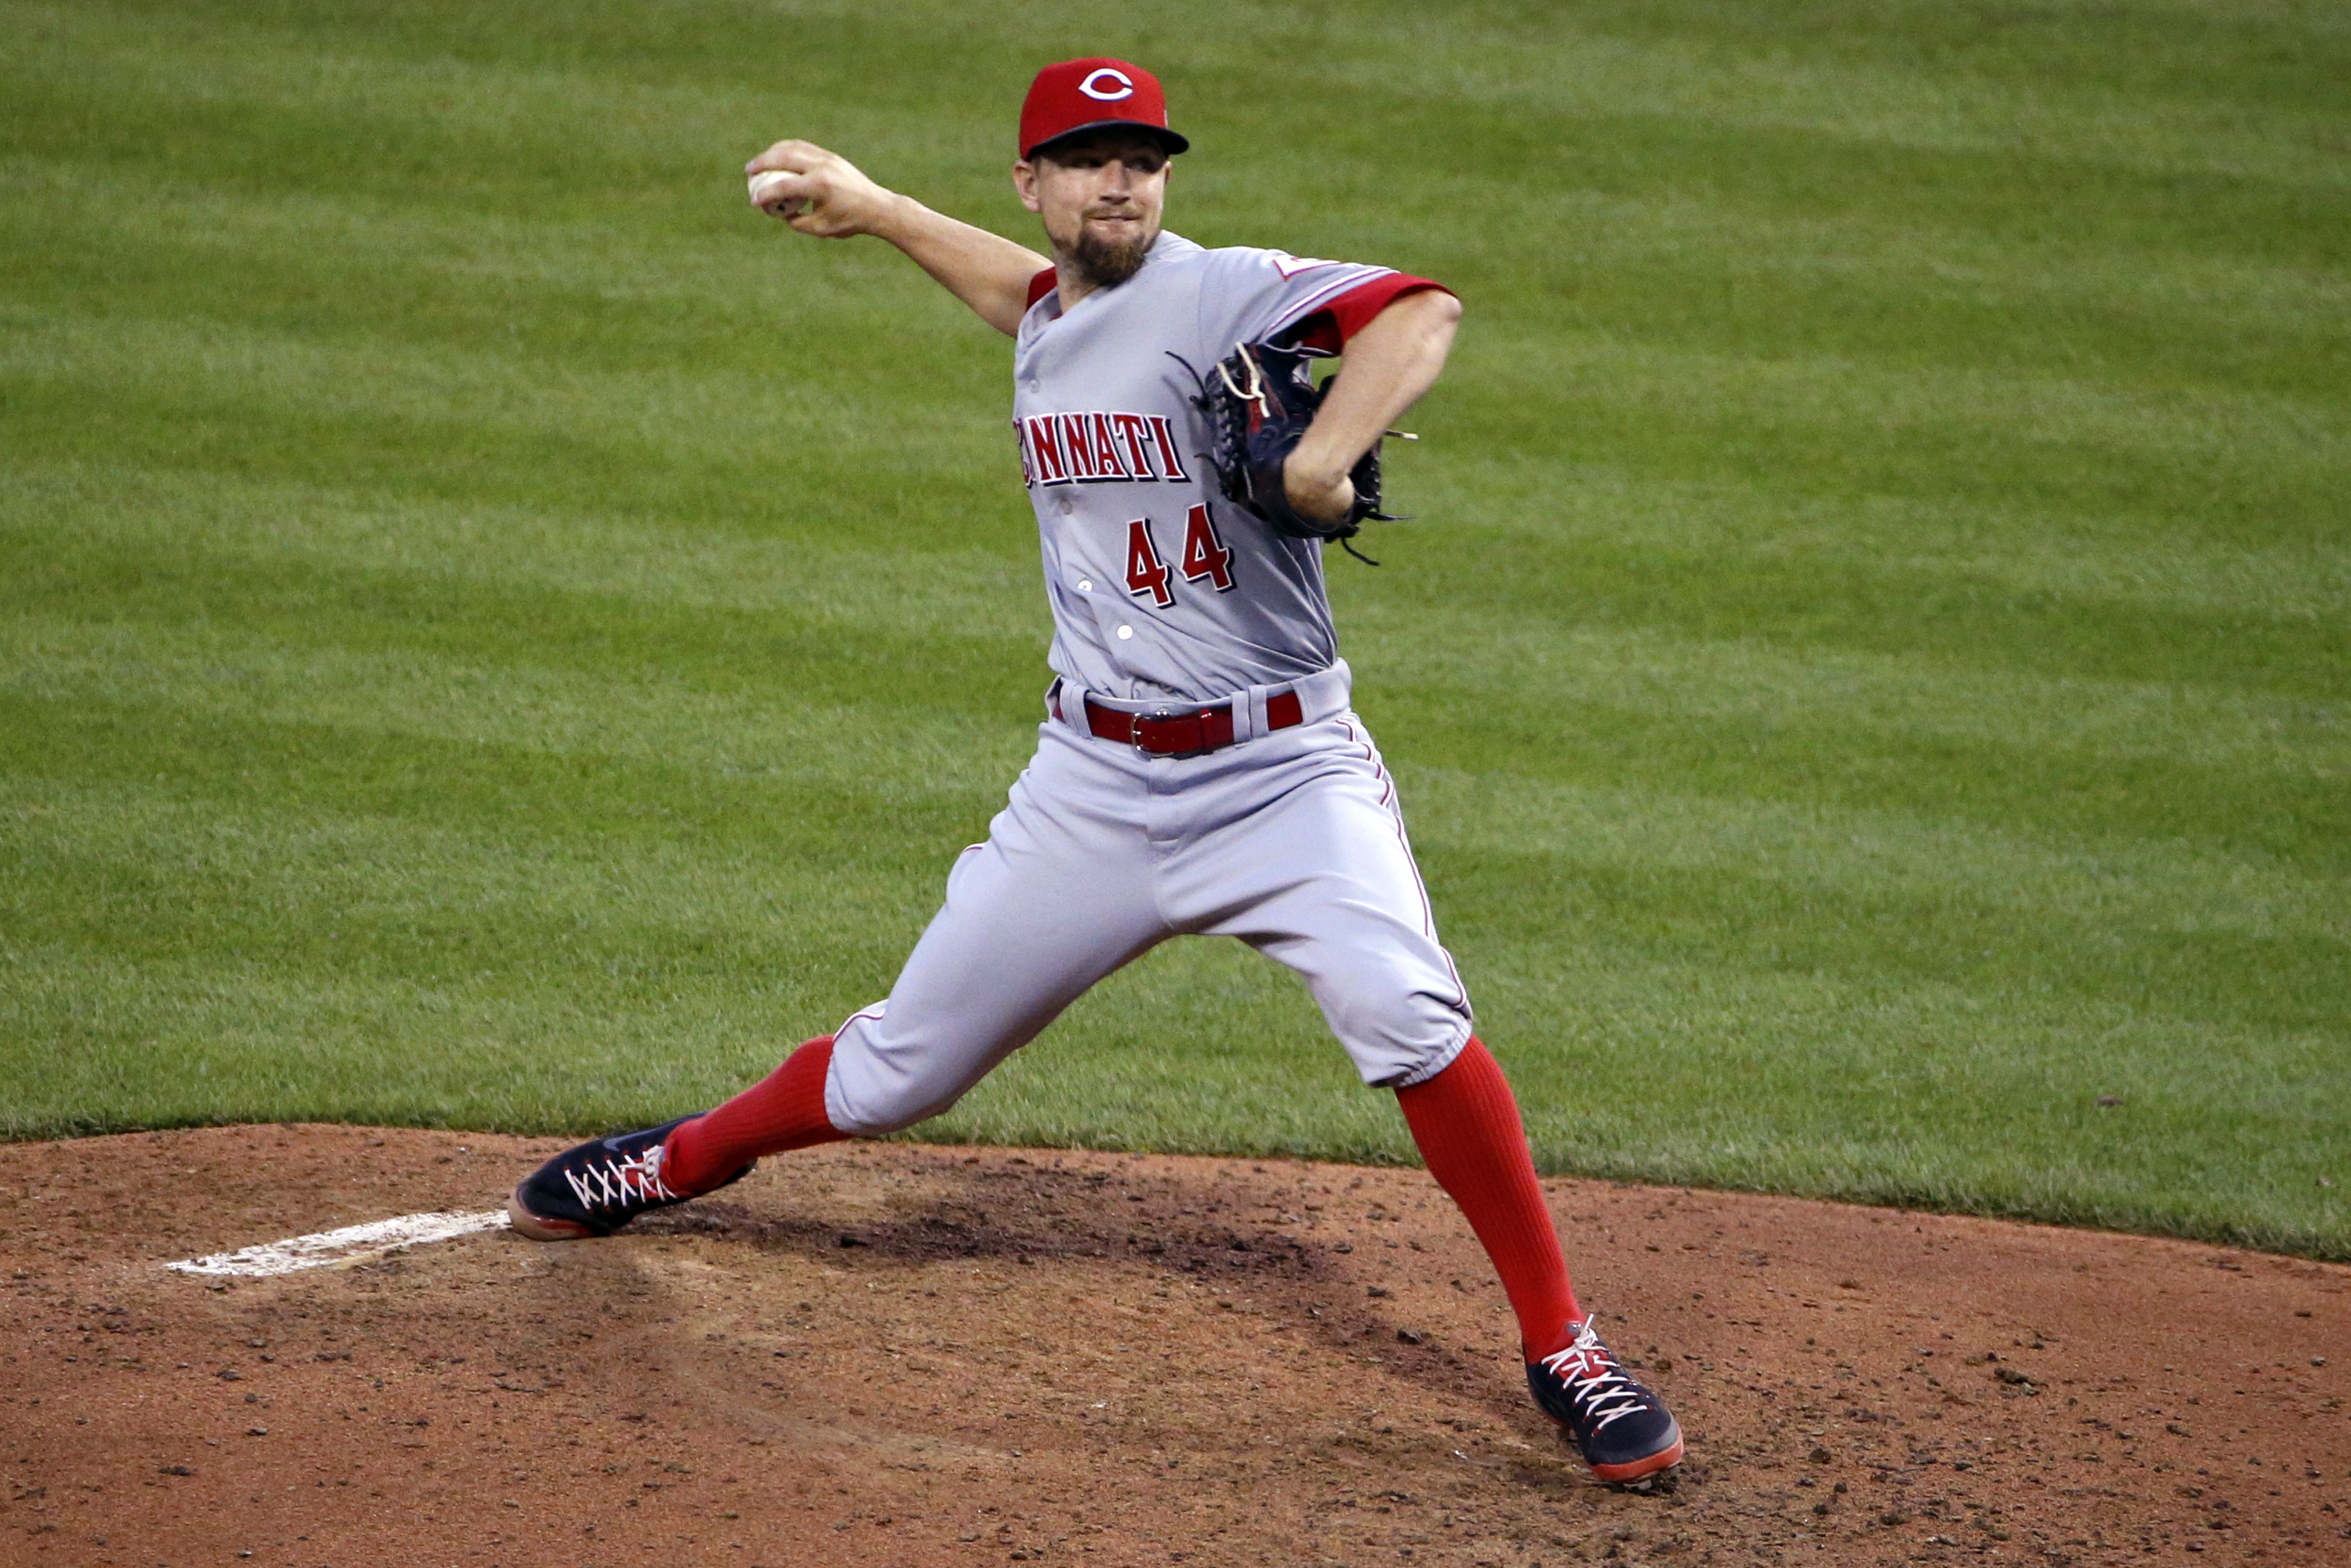 Cincinnati Reds starting pitcher Mike Leake (44) delivers during the fifth inning of a baseball game against the Pittsburgh Pirates in Pittsburgh, Wednesday, June 24, 2015. (AP Photo/Gene J. Puskar)